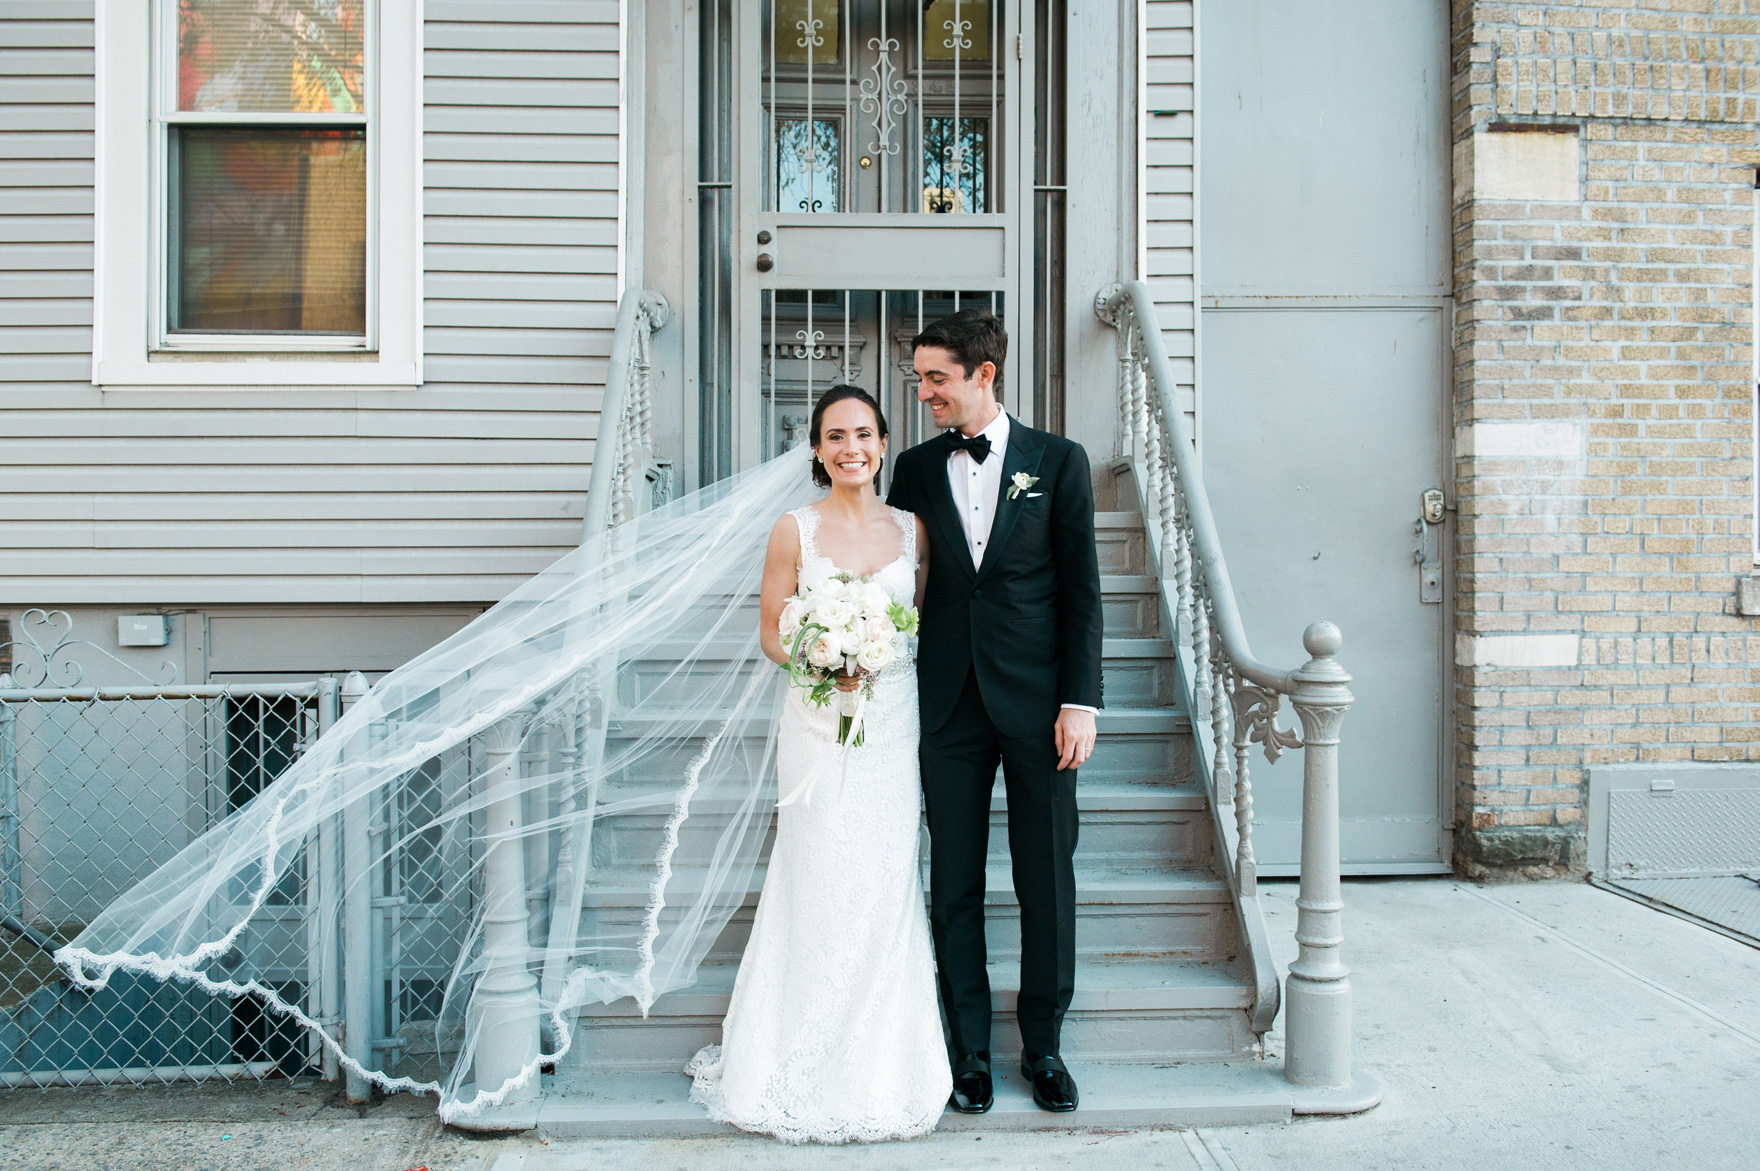 Williamsburg New York Fine Art Wedding by Christina Lilly Photography056